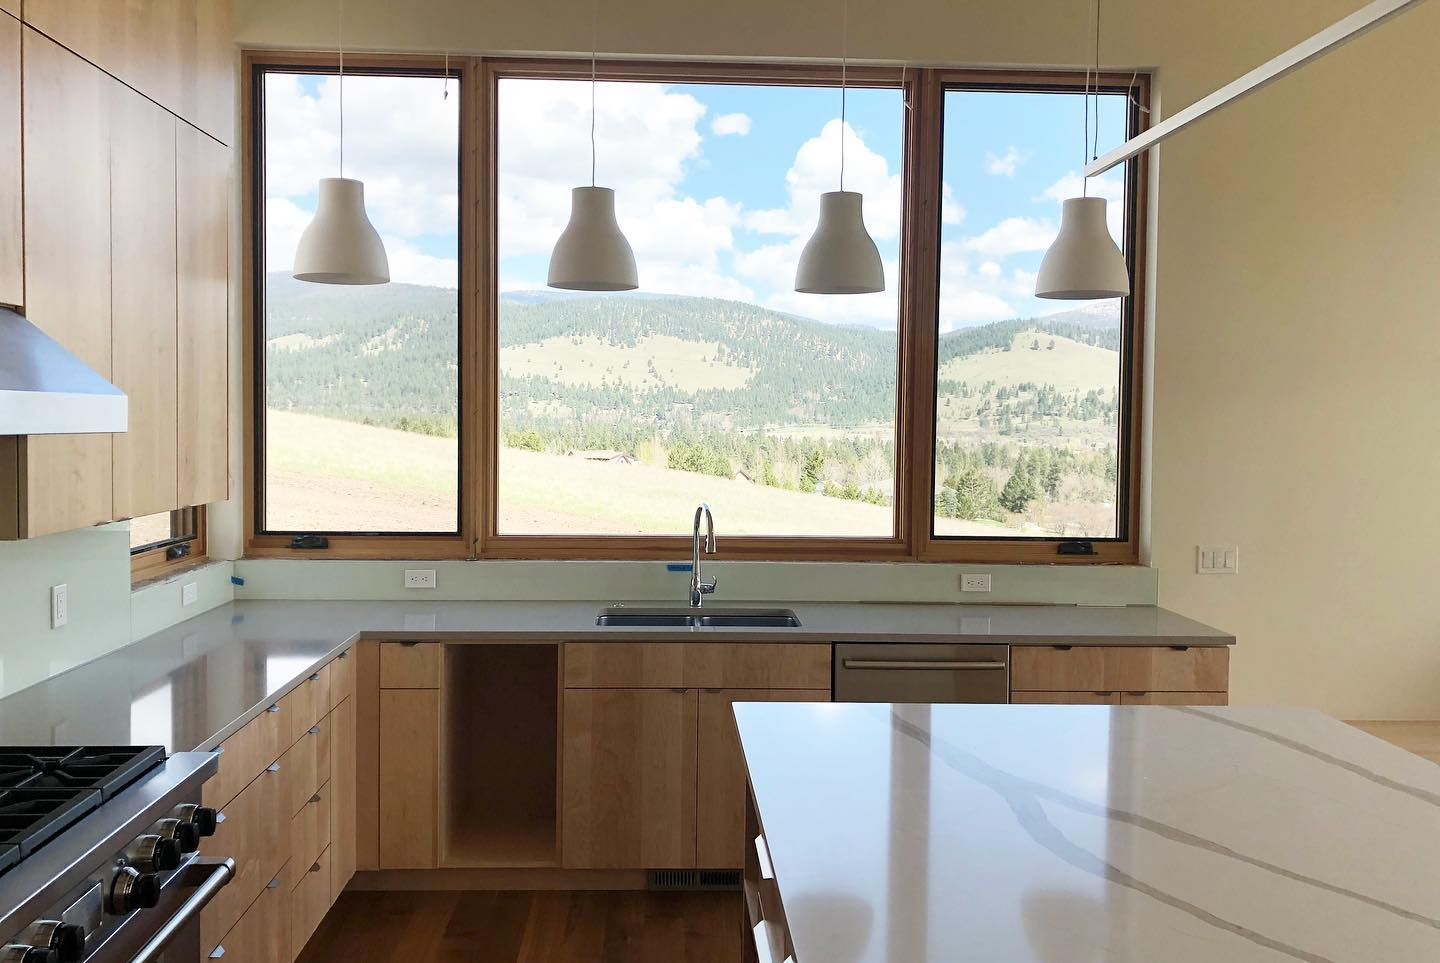 kitchen-with-picture-windows-in-Edgell-home